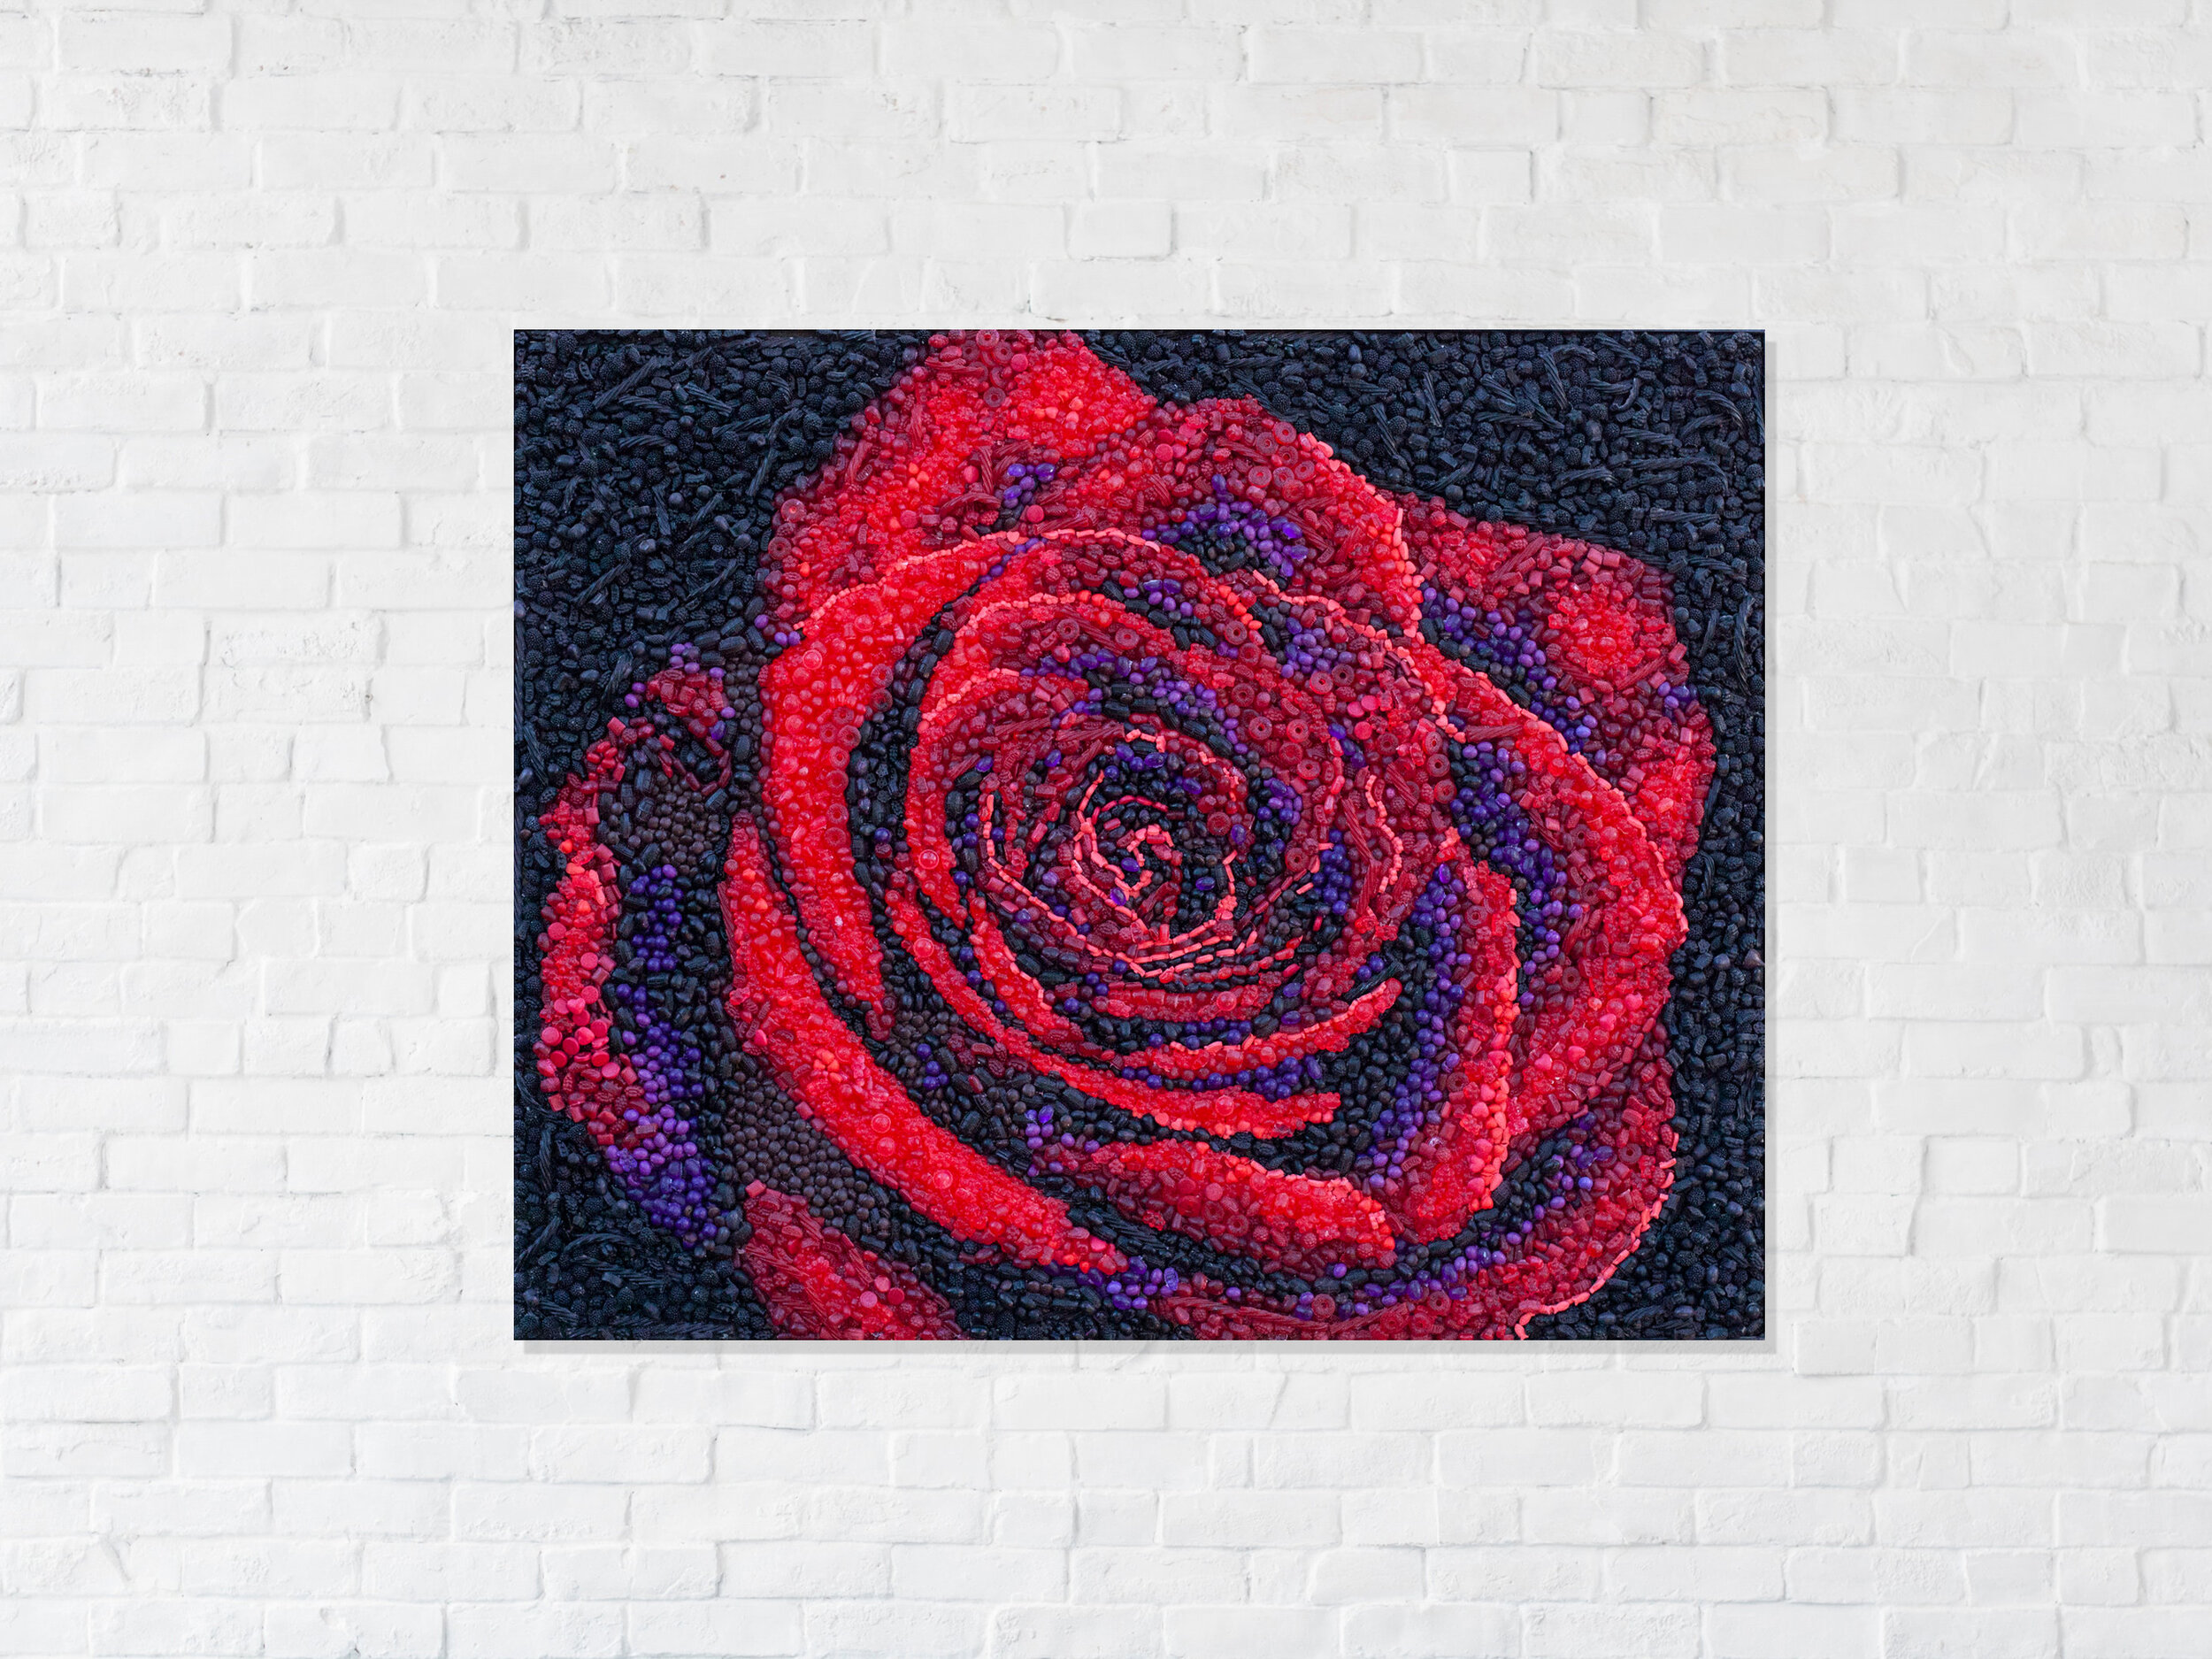 a rose by any other name - 15,000 hand cast pieces of candy